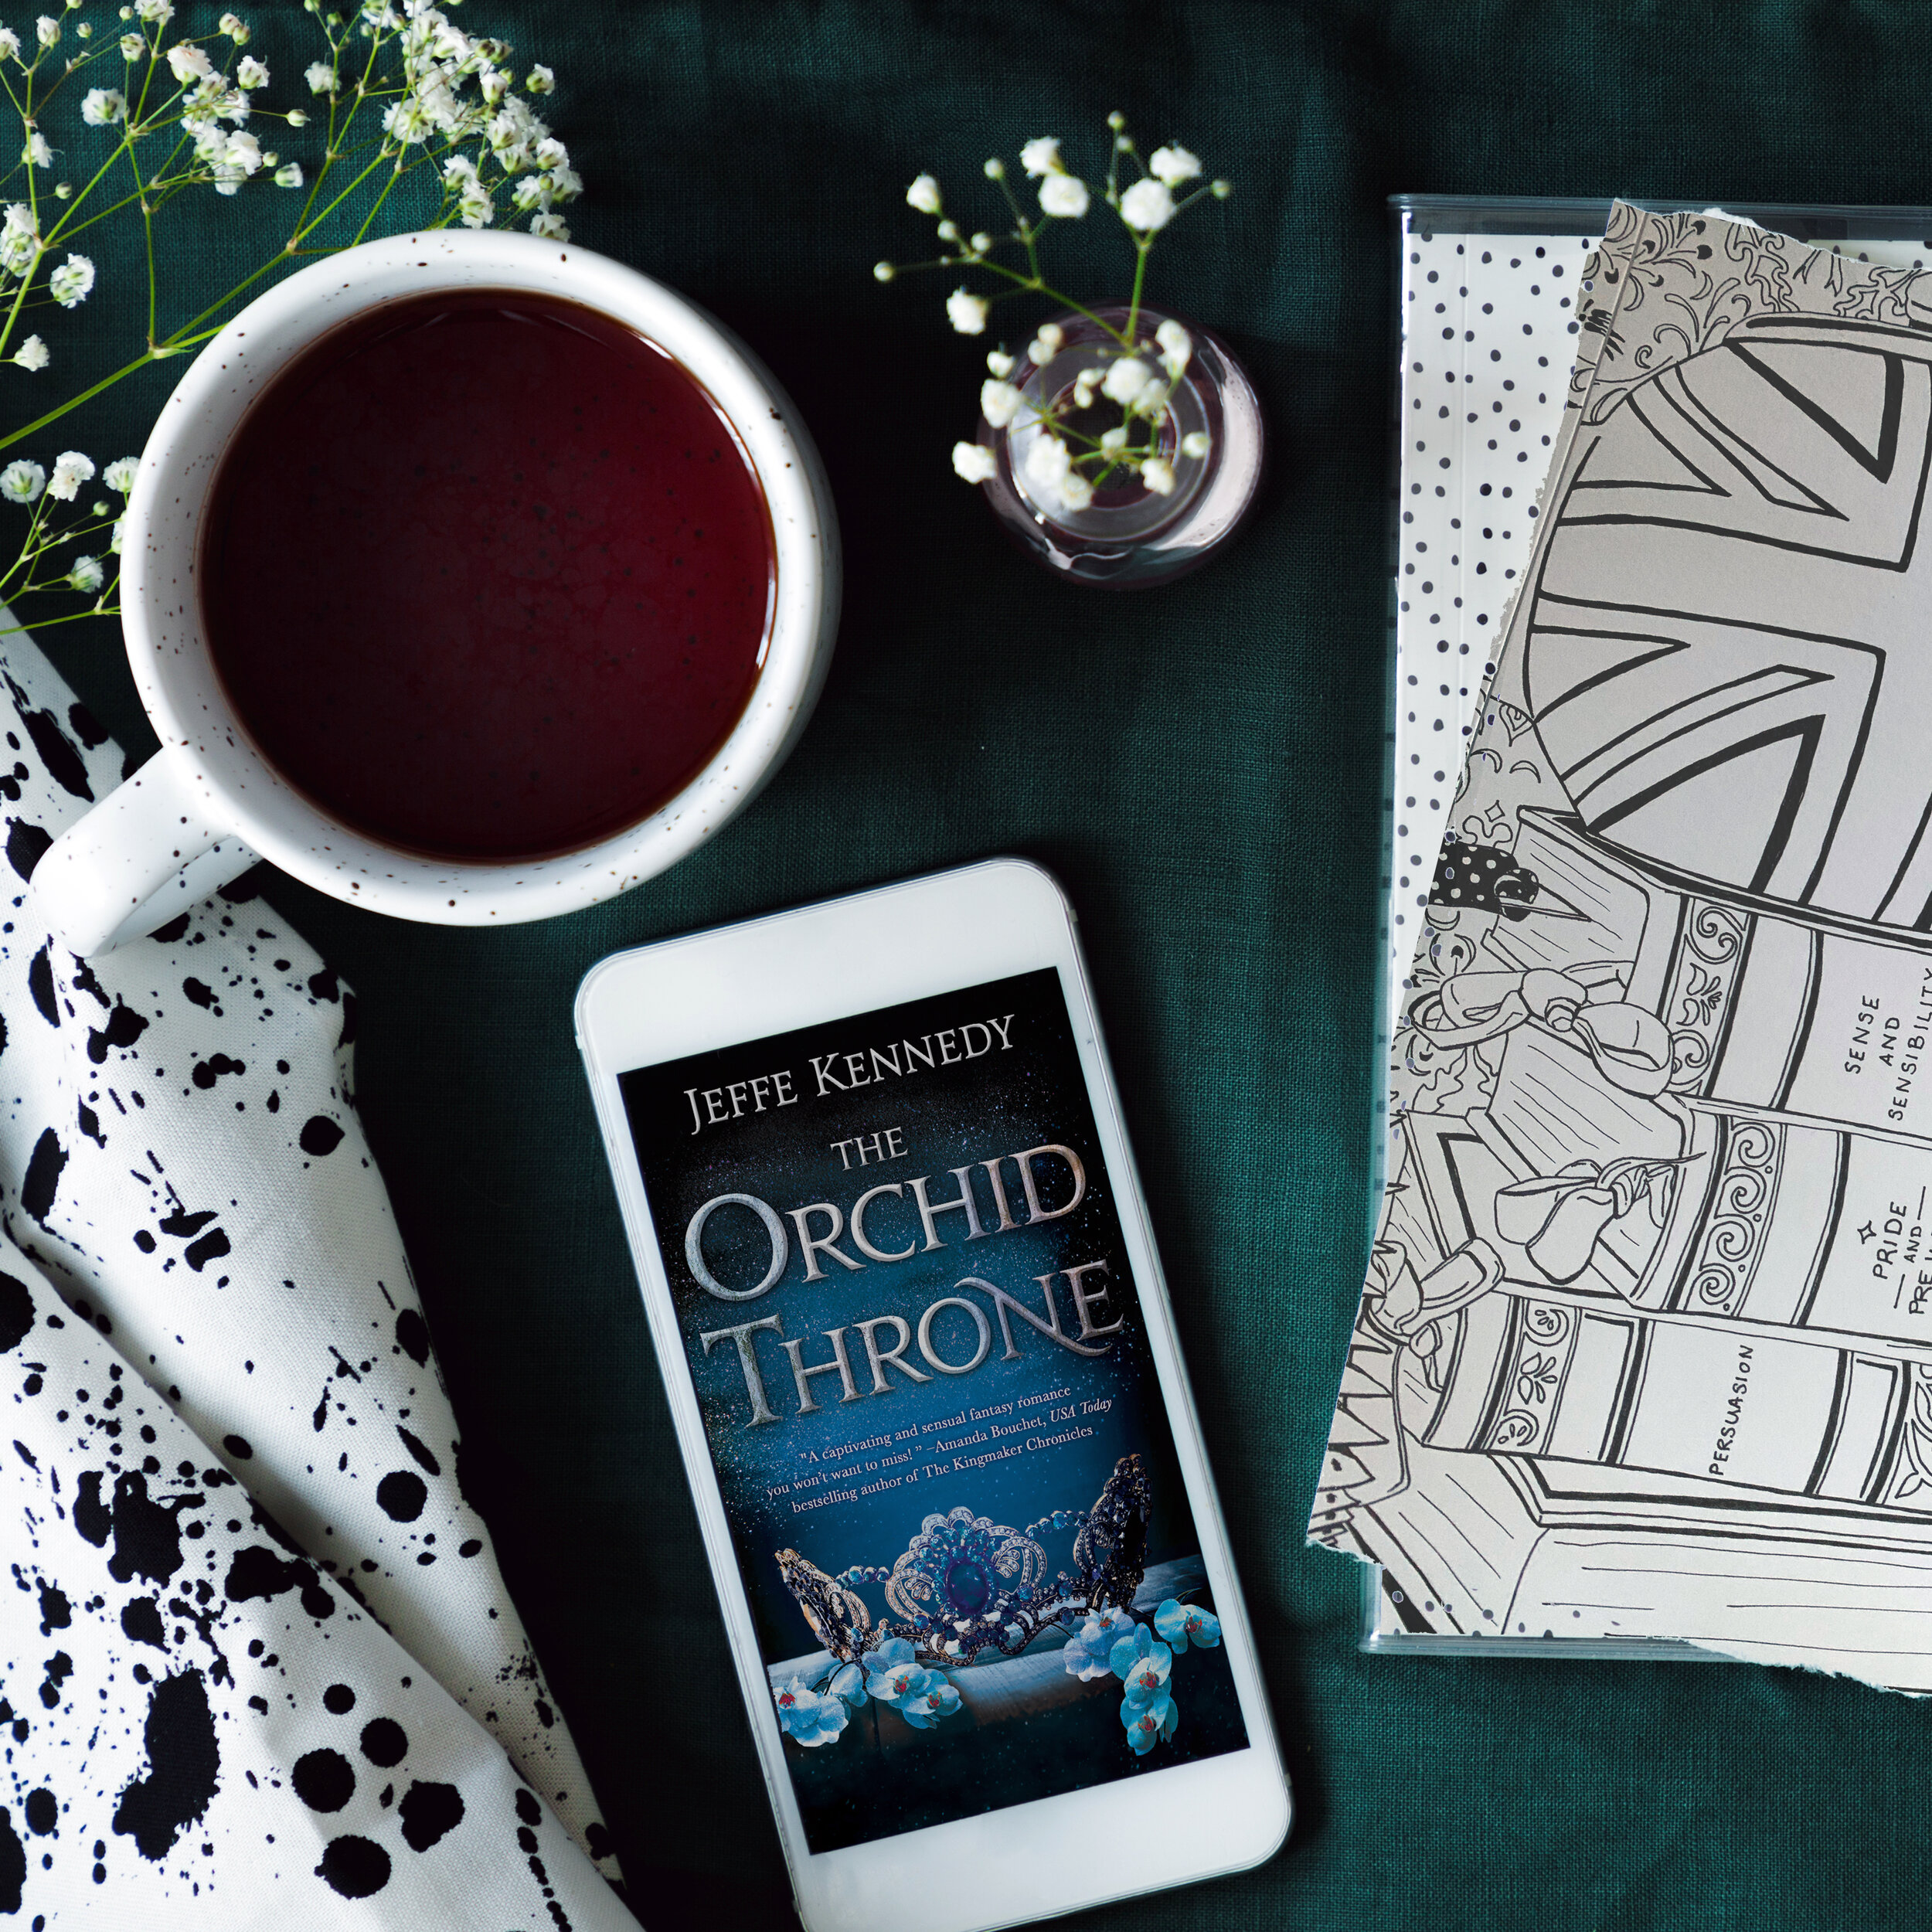 ** Book Review for THE ORCHID THRONE by Jeffe Kennedy **